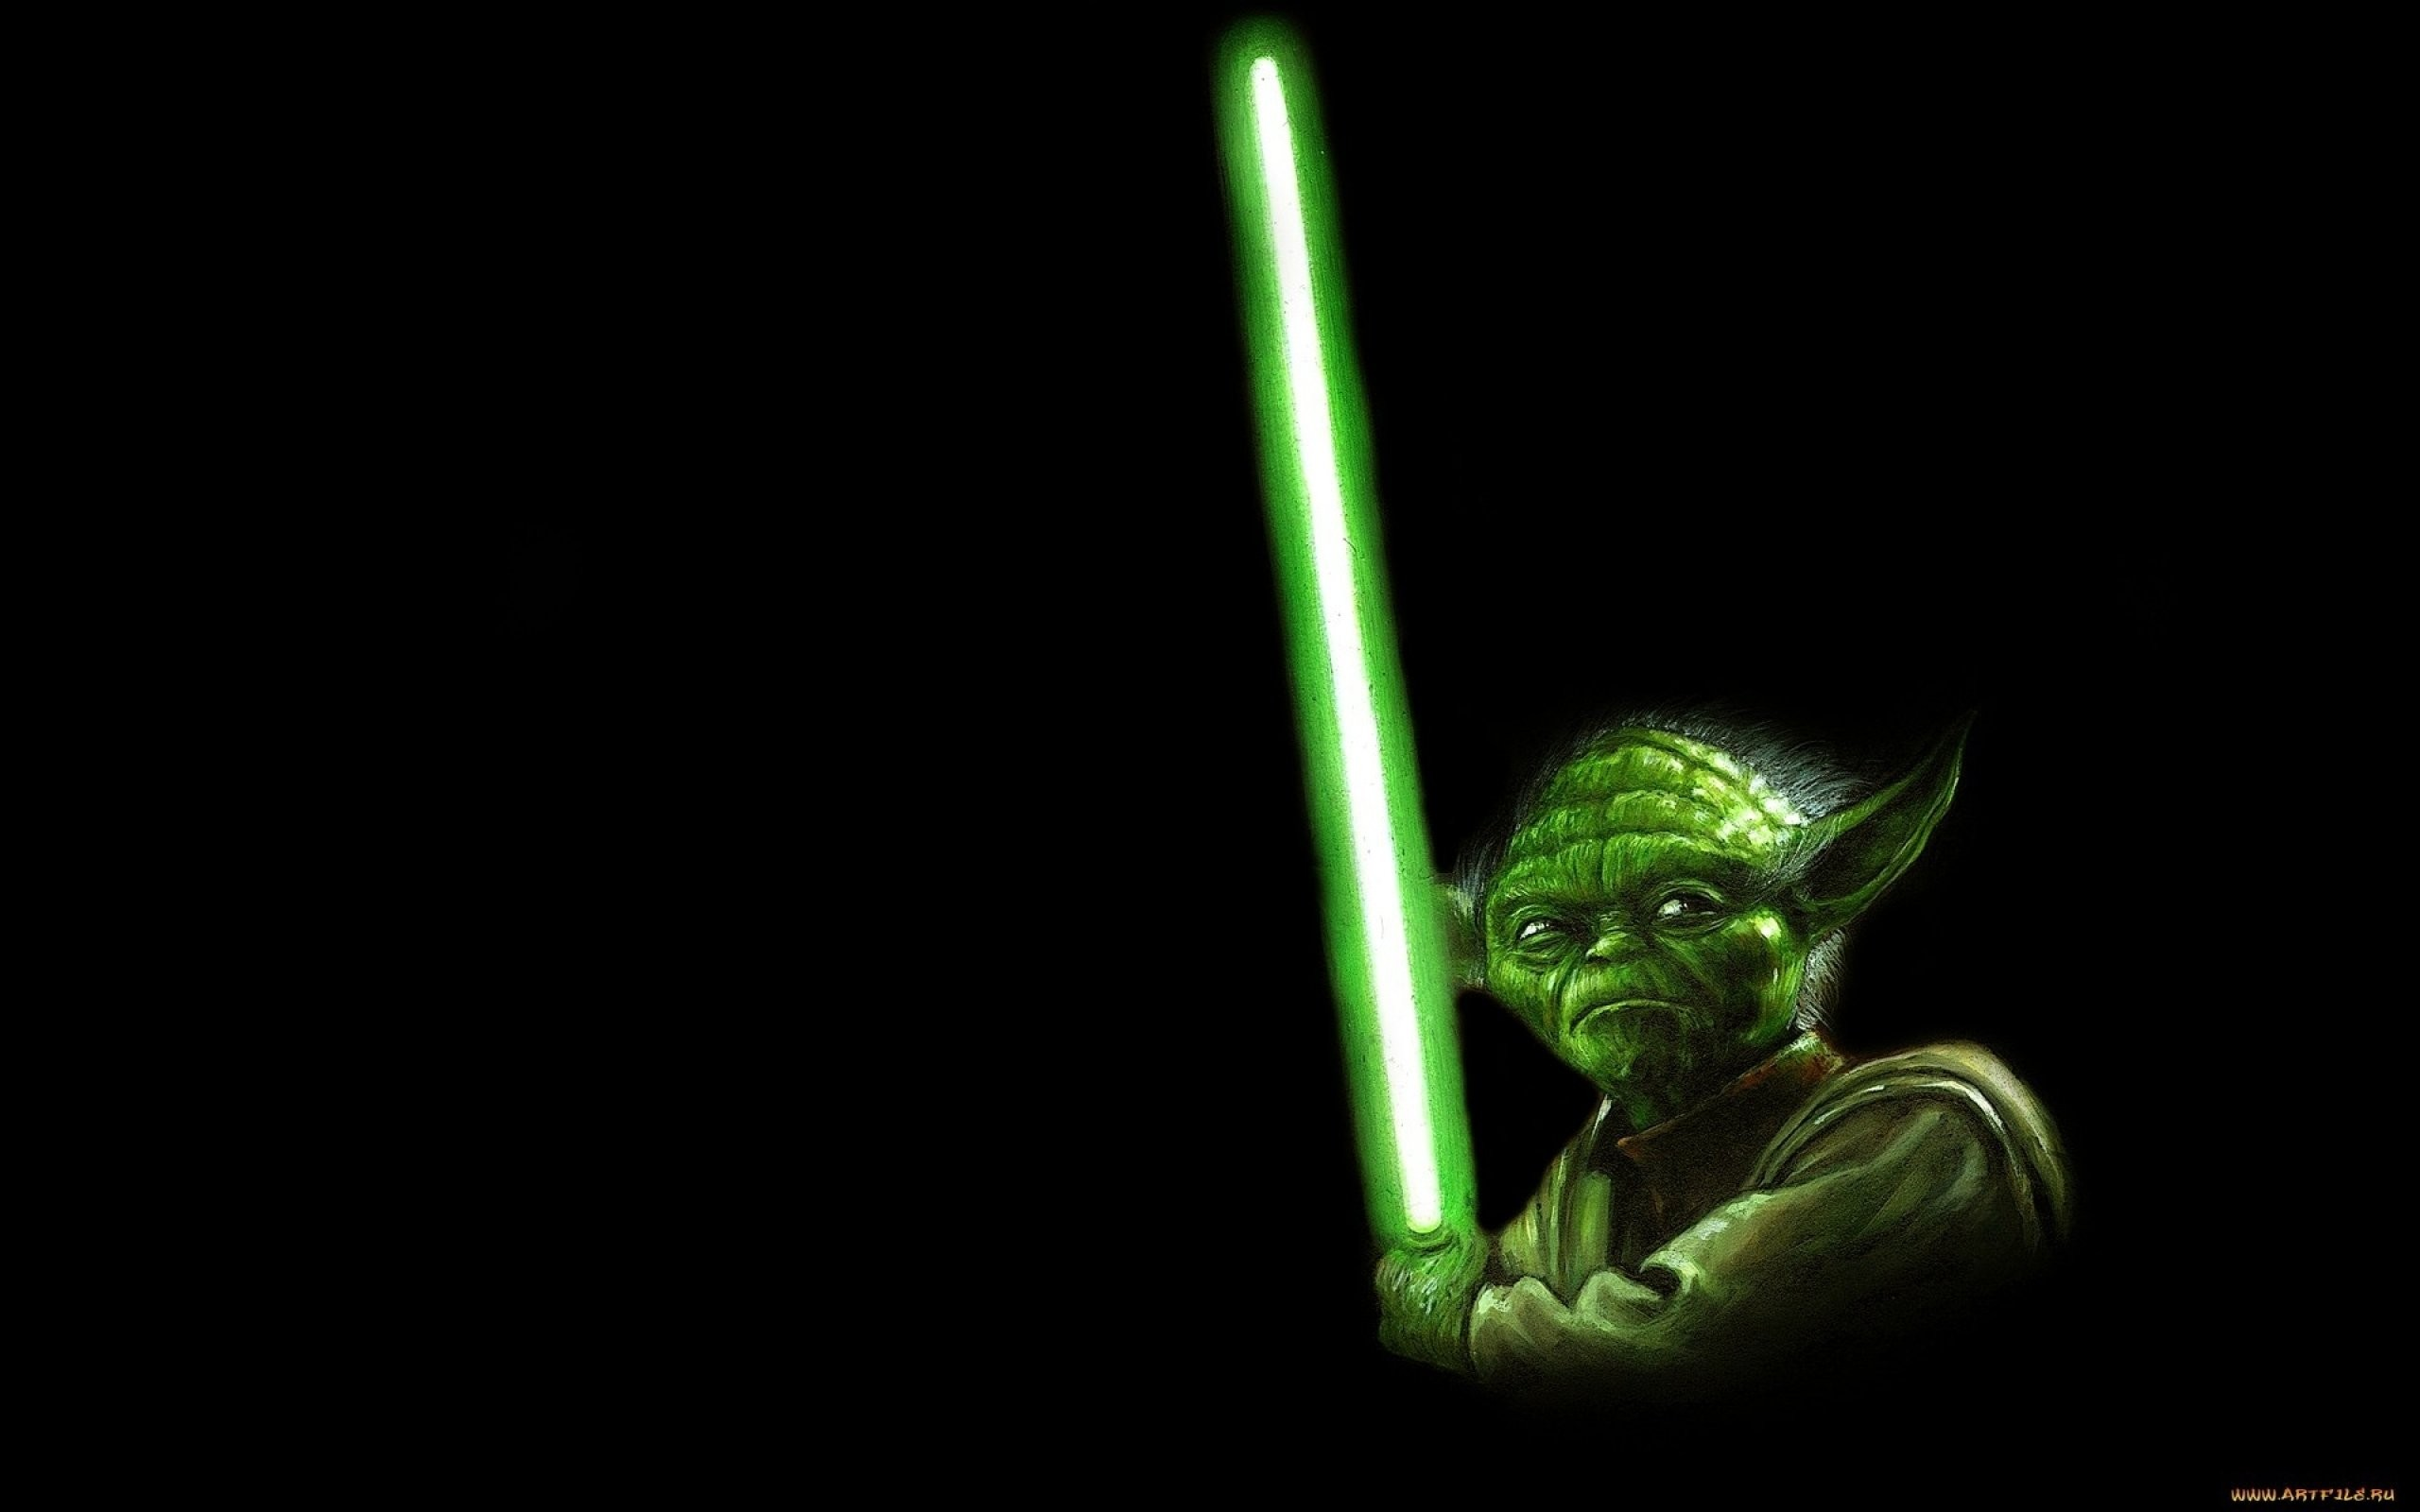 Yoda Wallpaper Download Free Beautiful High Resolution Wallpapers For Desktop Mobile Laptop In Any Resolution Desktop Android Iphone Ipad 1920x1080 320x480 1680x1050 1280x900 Etc Wallpapertag